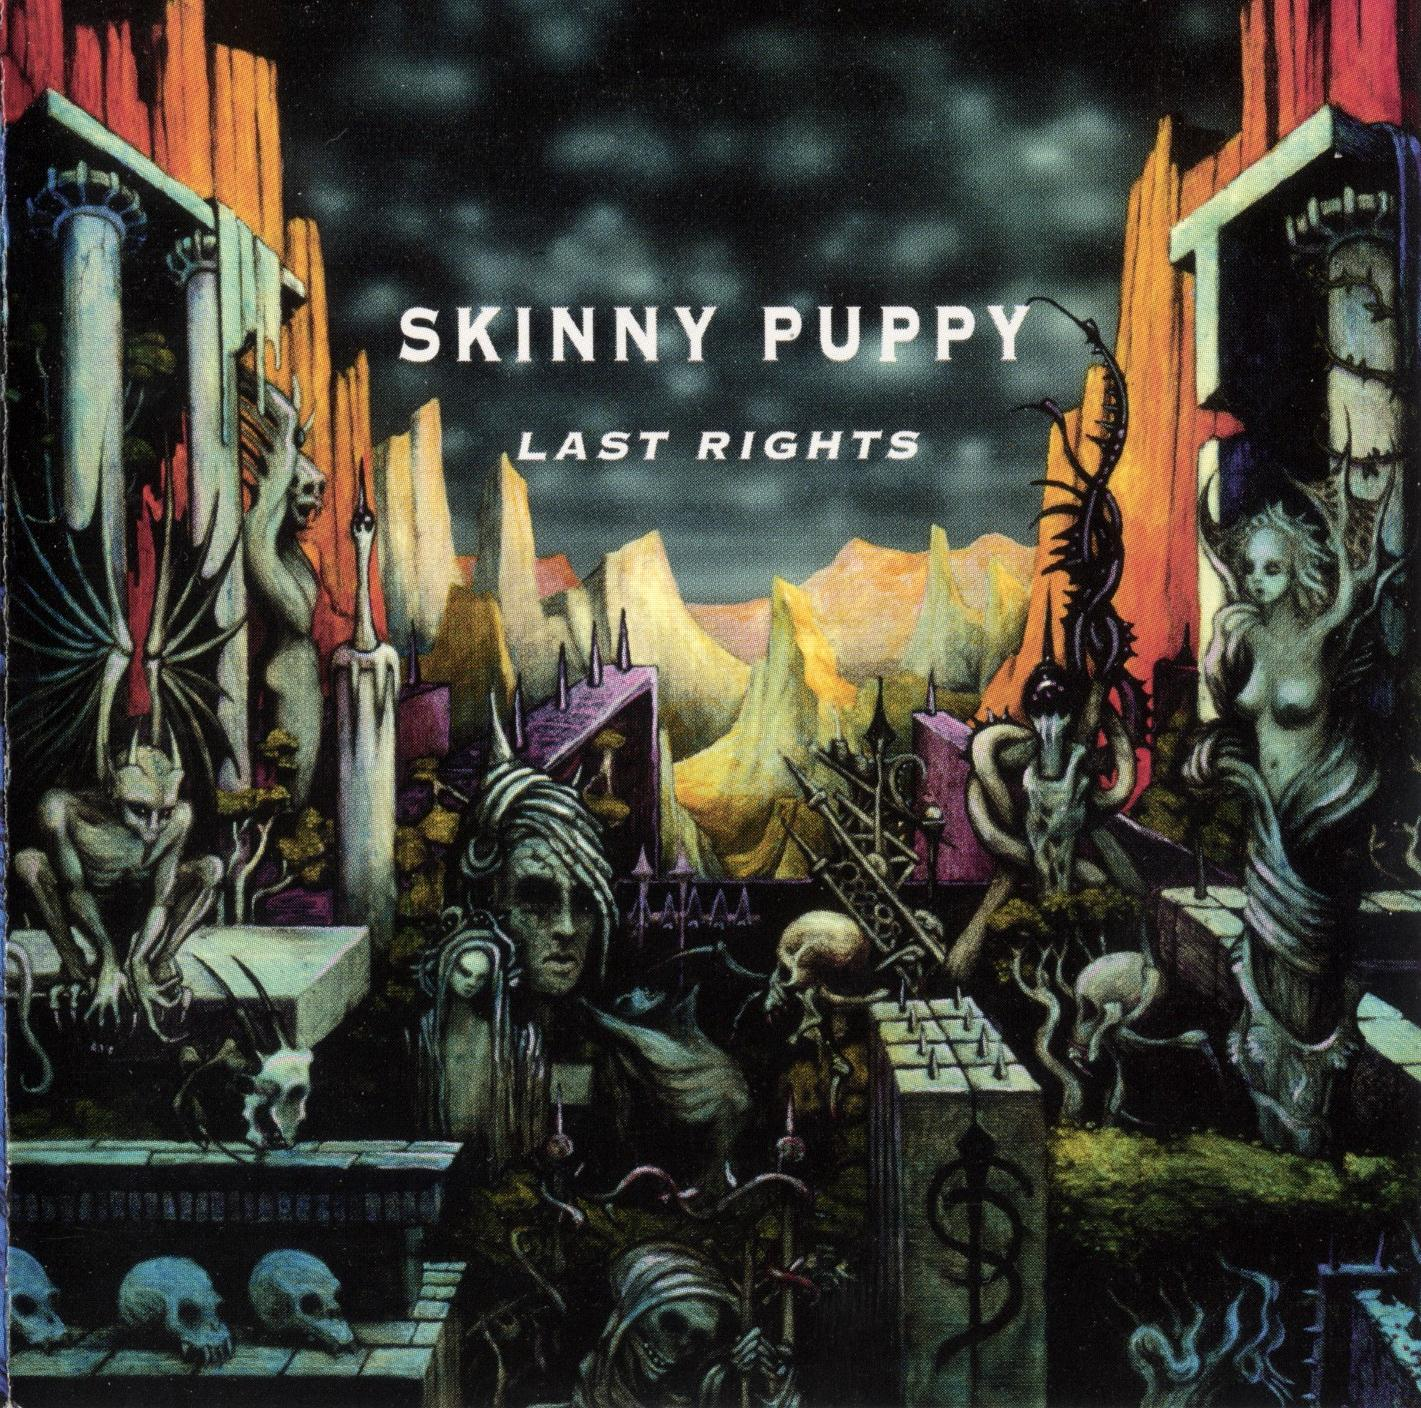 Skinny Puppy - Last right